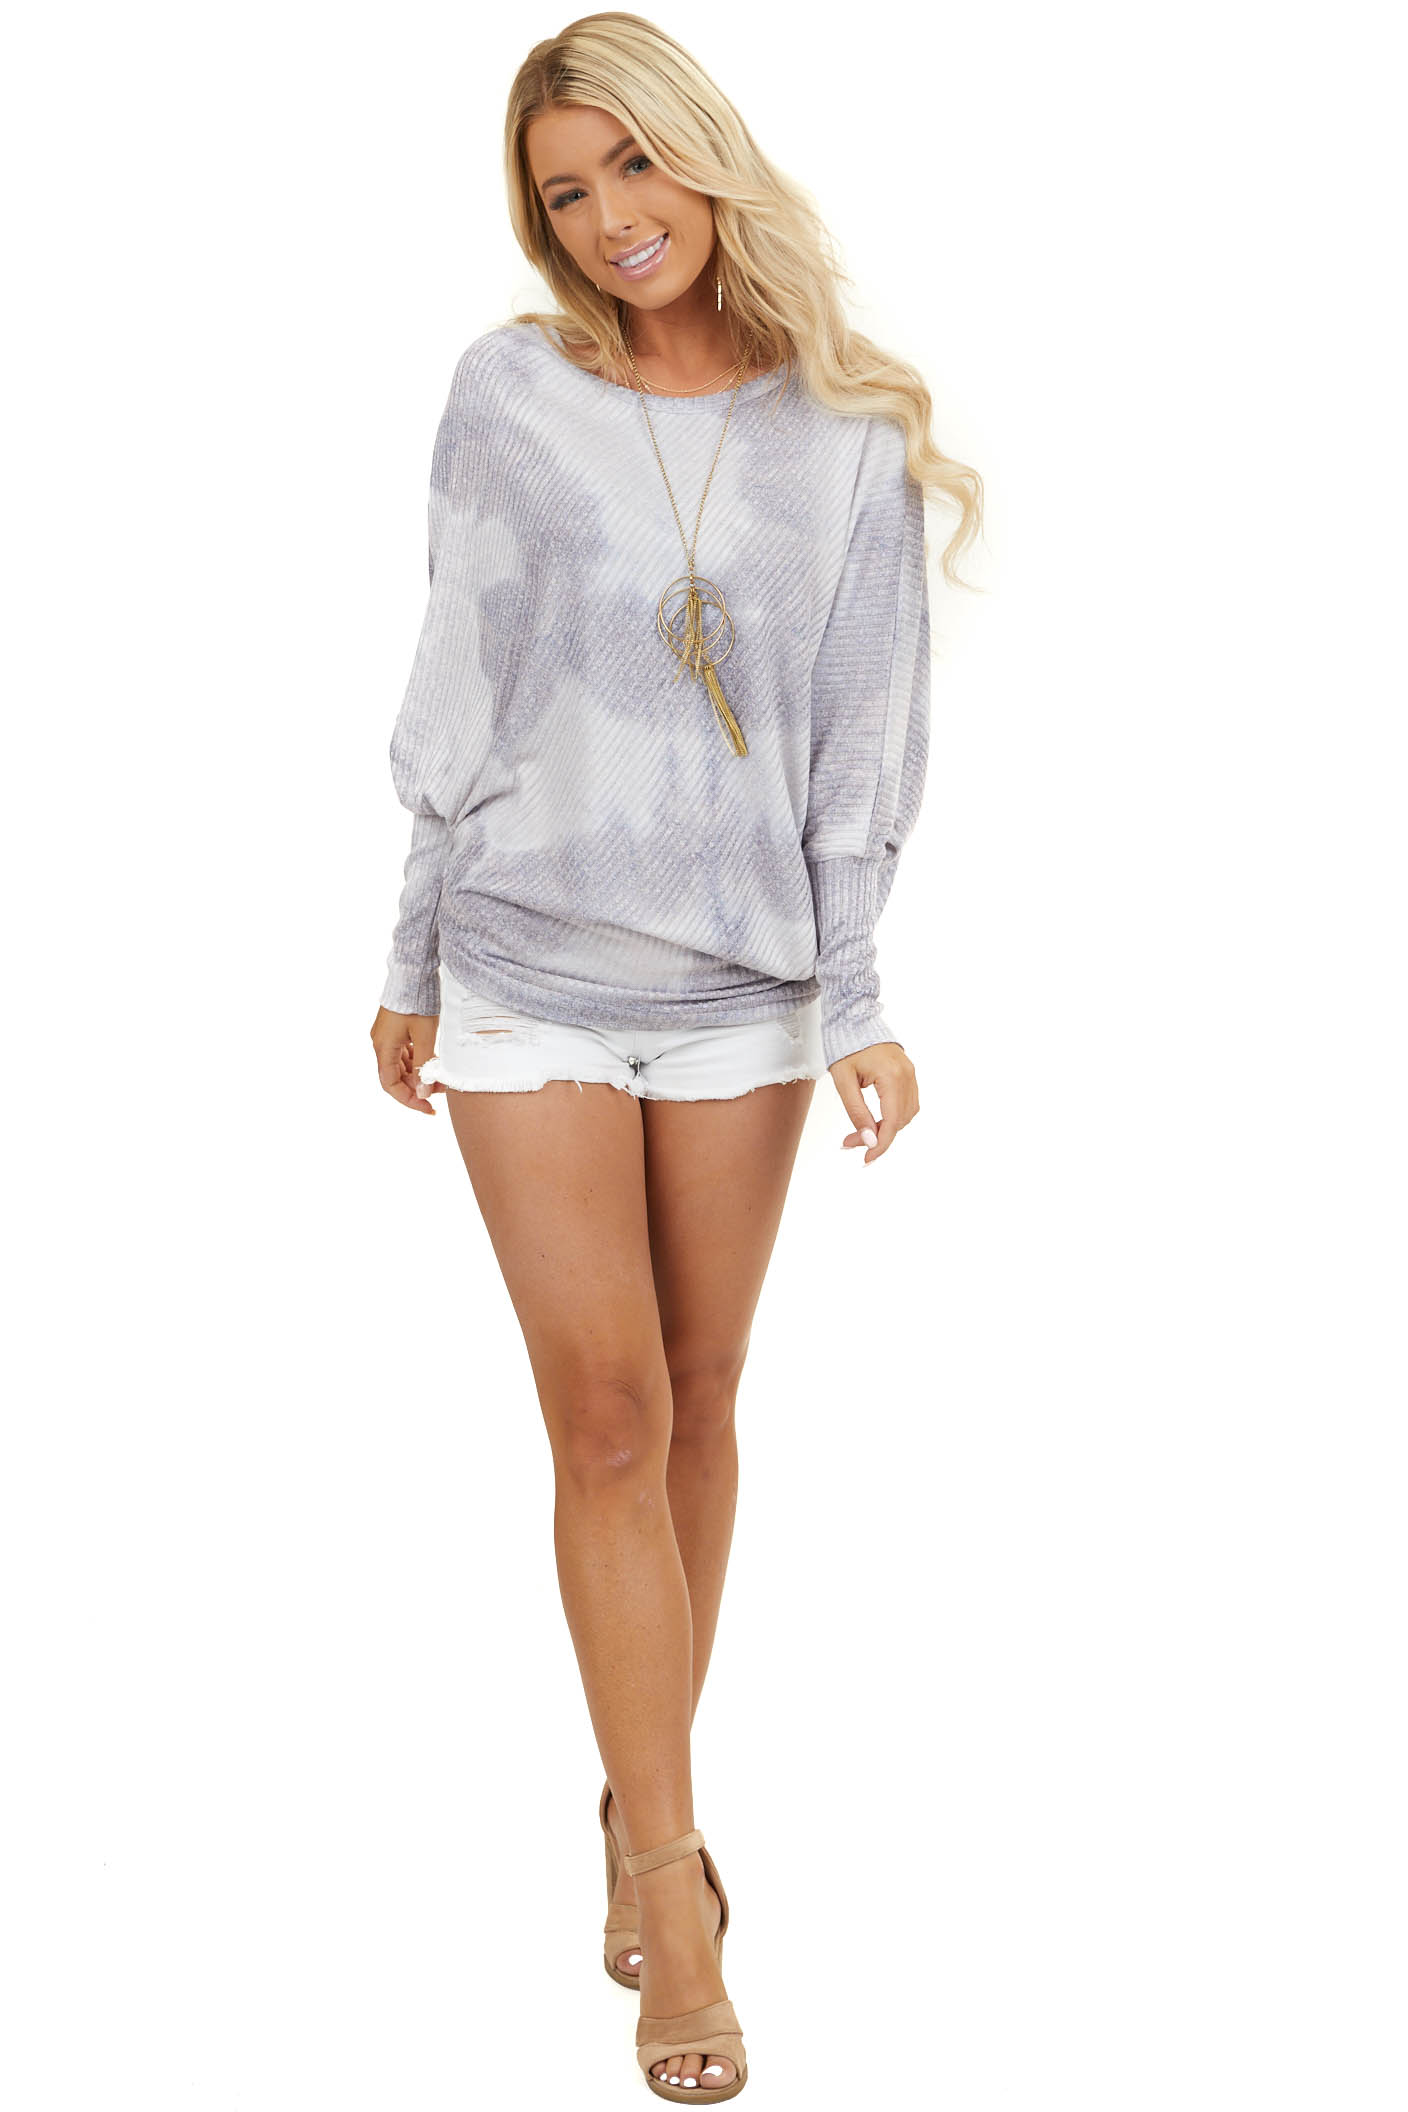 Dusty Lilac Tie Dye Long Sleeve Top with Asymmetrical Hem